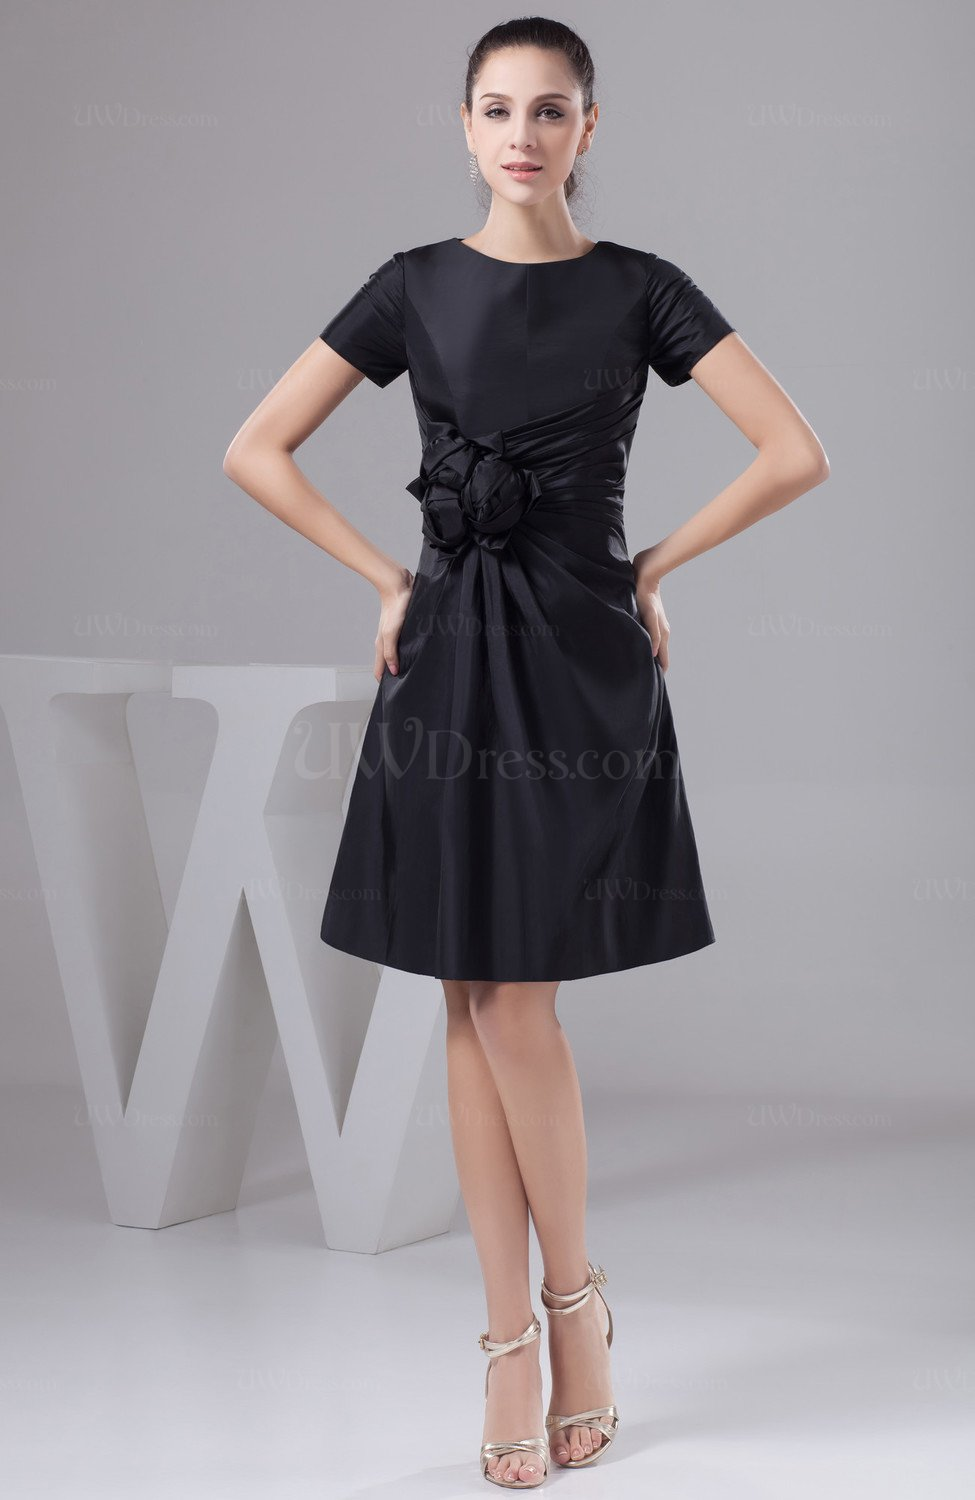 Black With Sleeves Bridesmaid Dress Unique Simple Flower